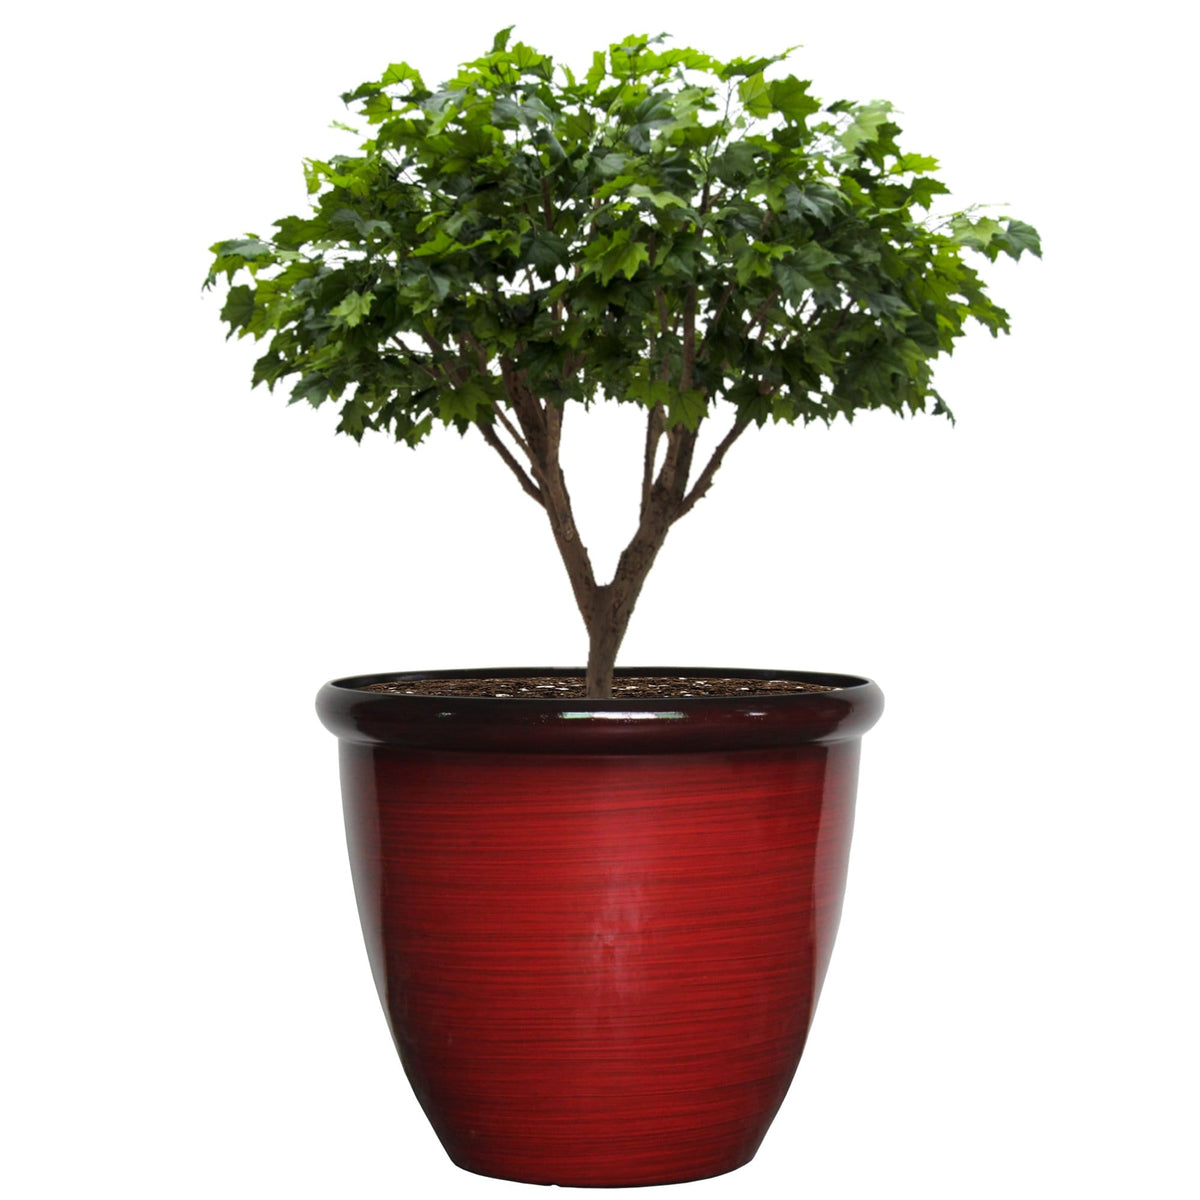 22 Inch Rim Planter - Jagtap Nursery's Garden Center